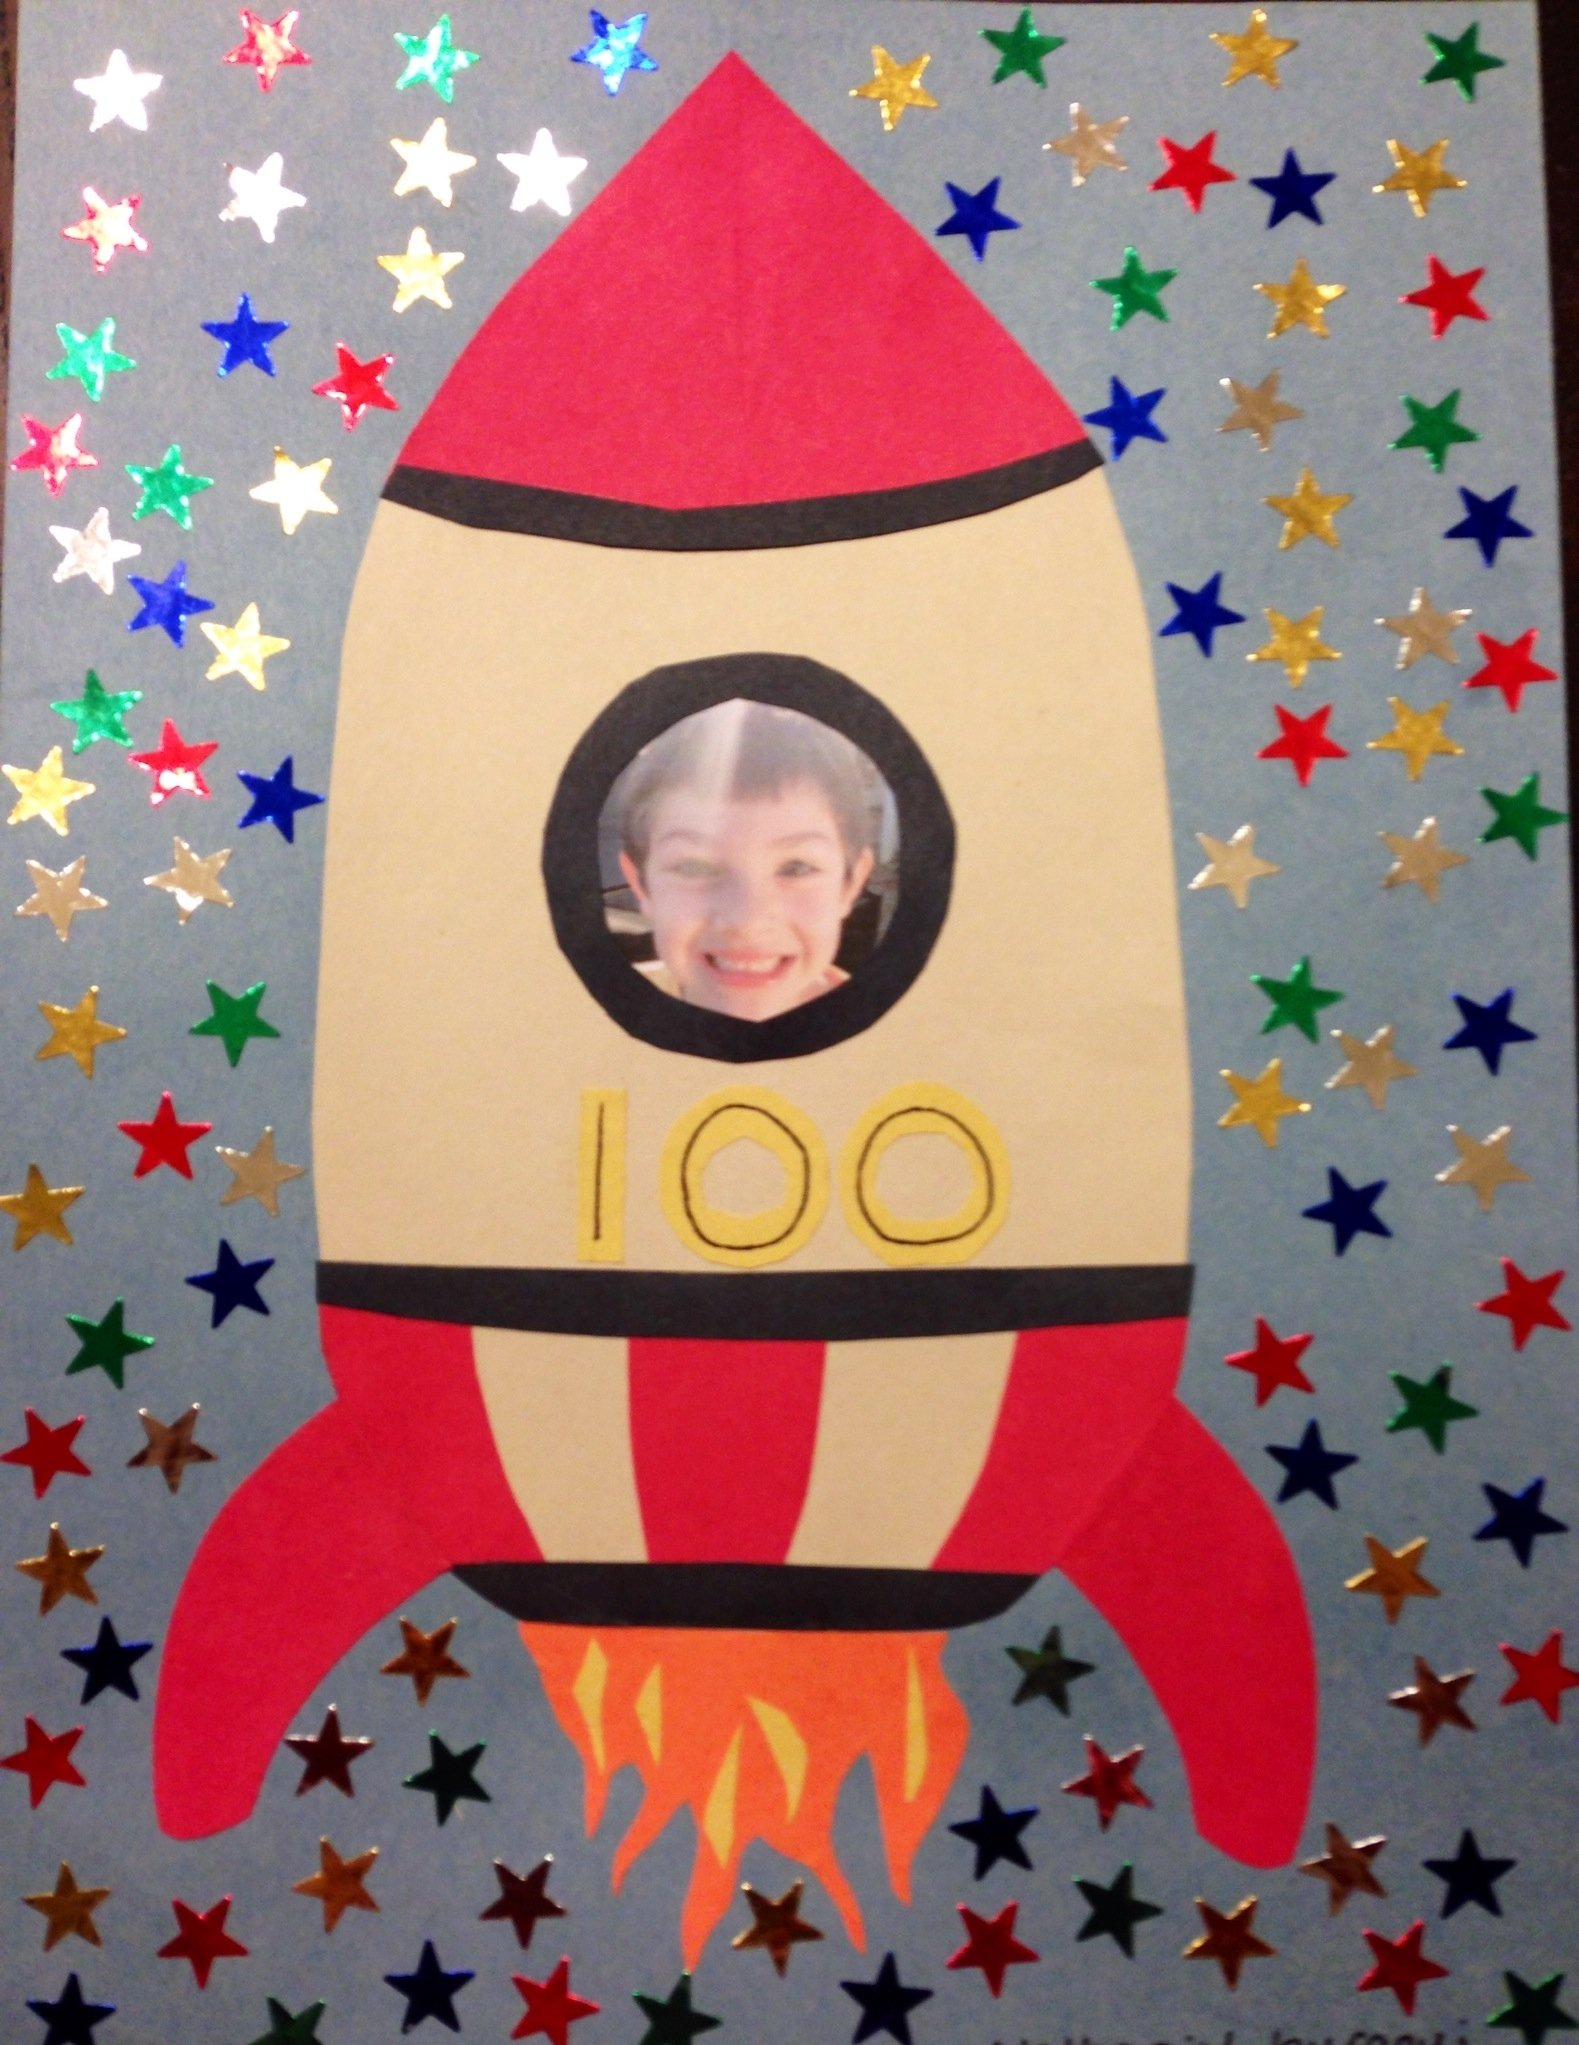 10 Perfect Ideas For 100 Days Of School Project nates 100th day of school project love life happiness 3 2021